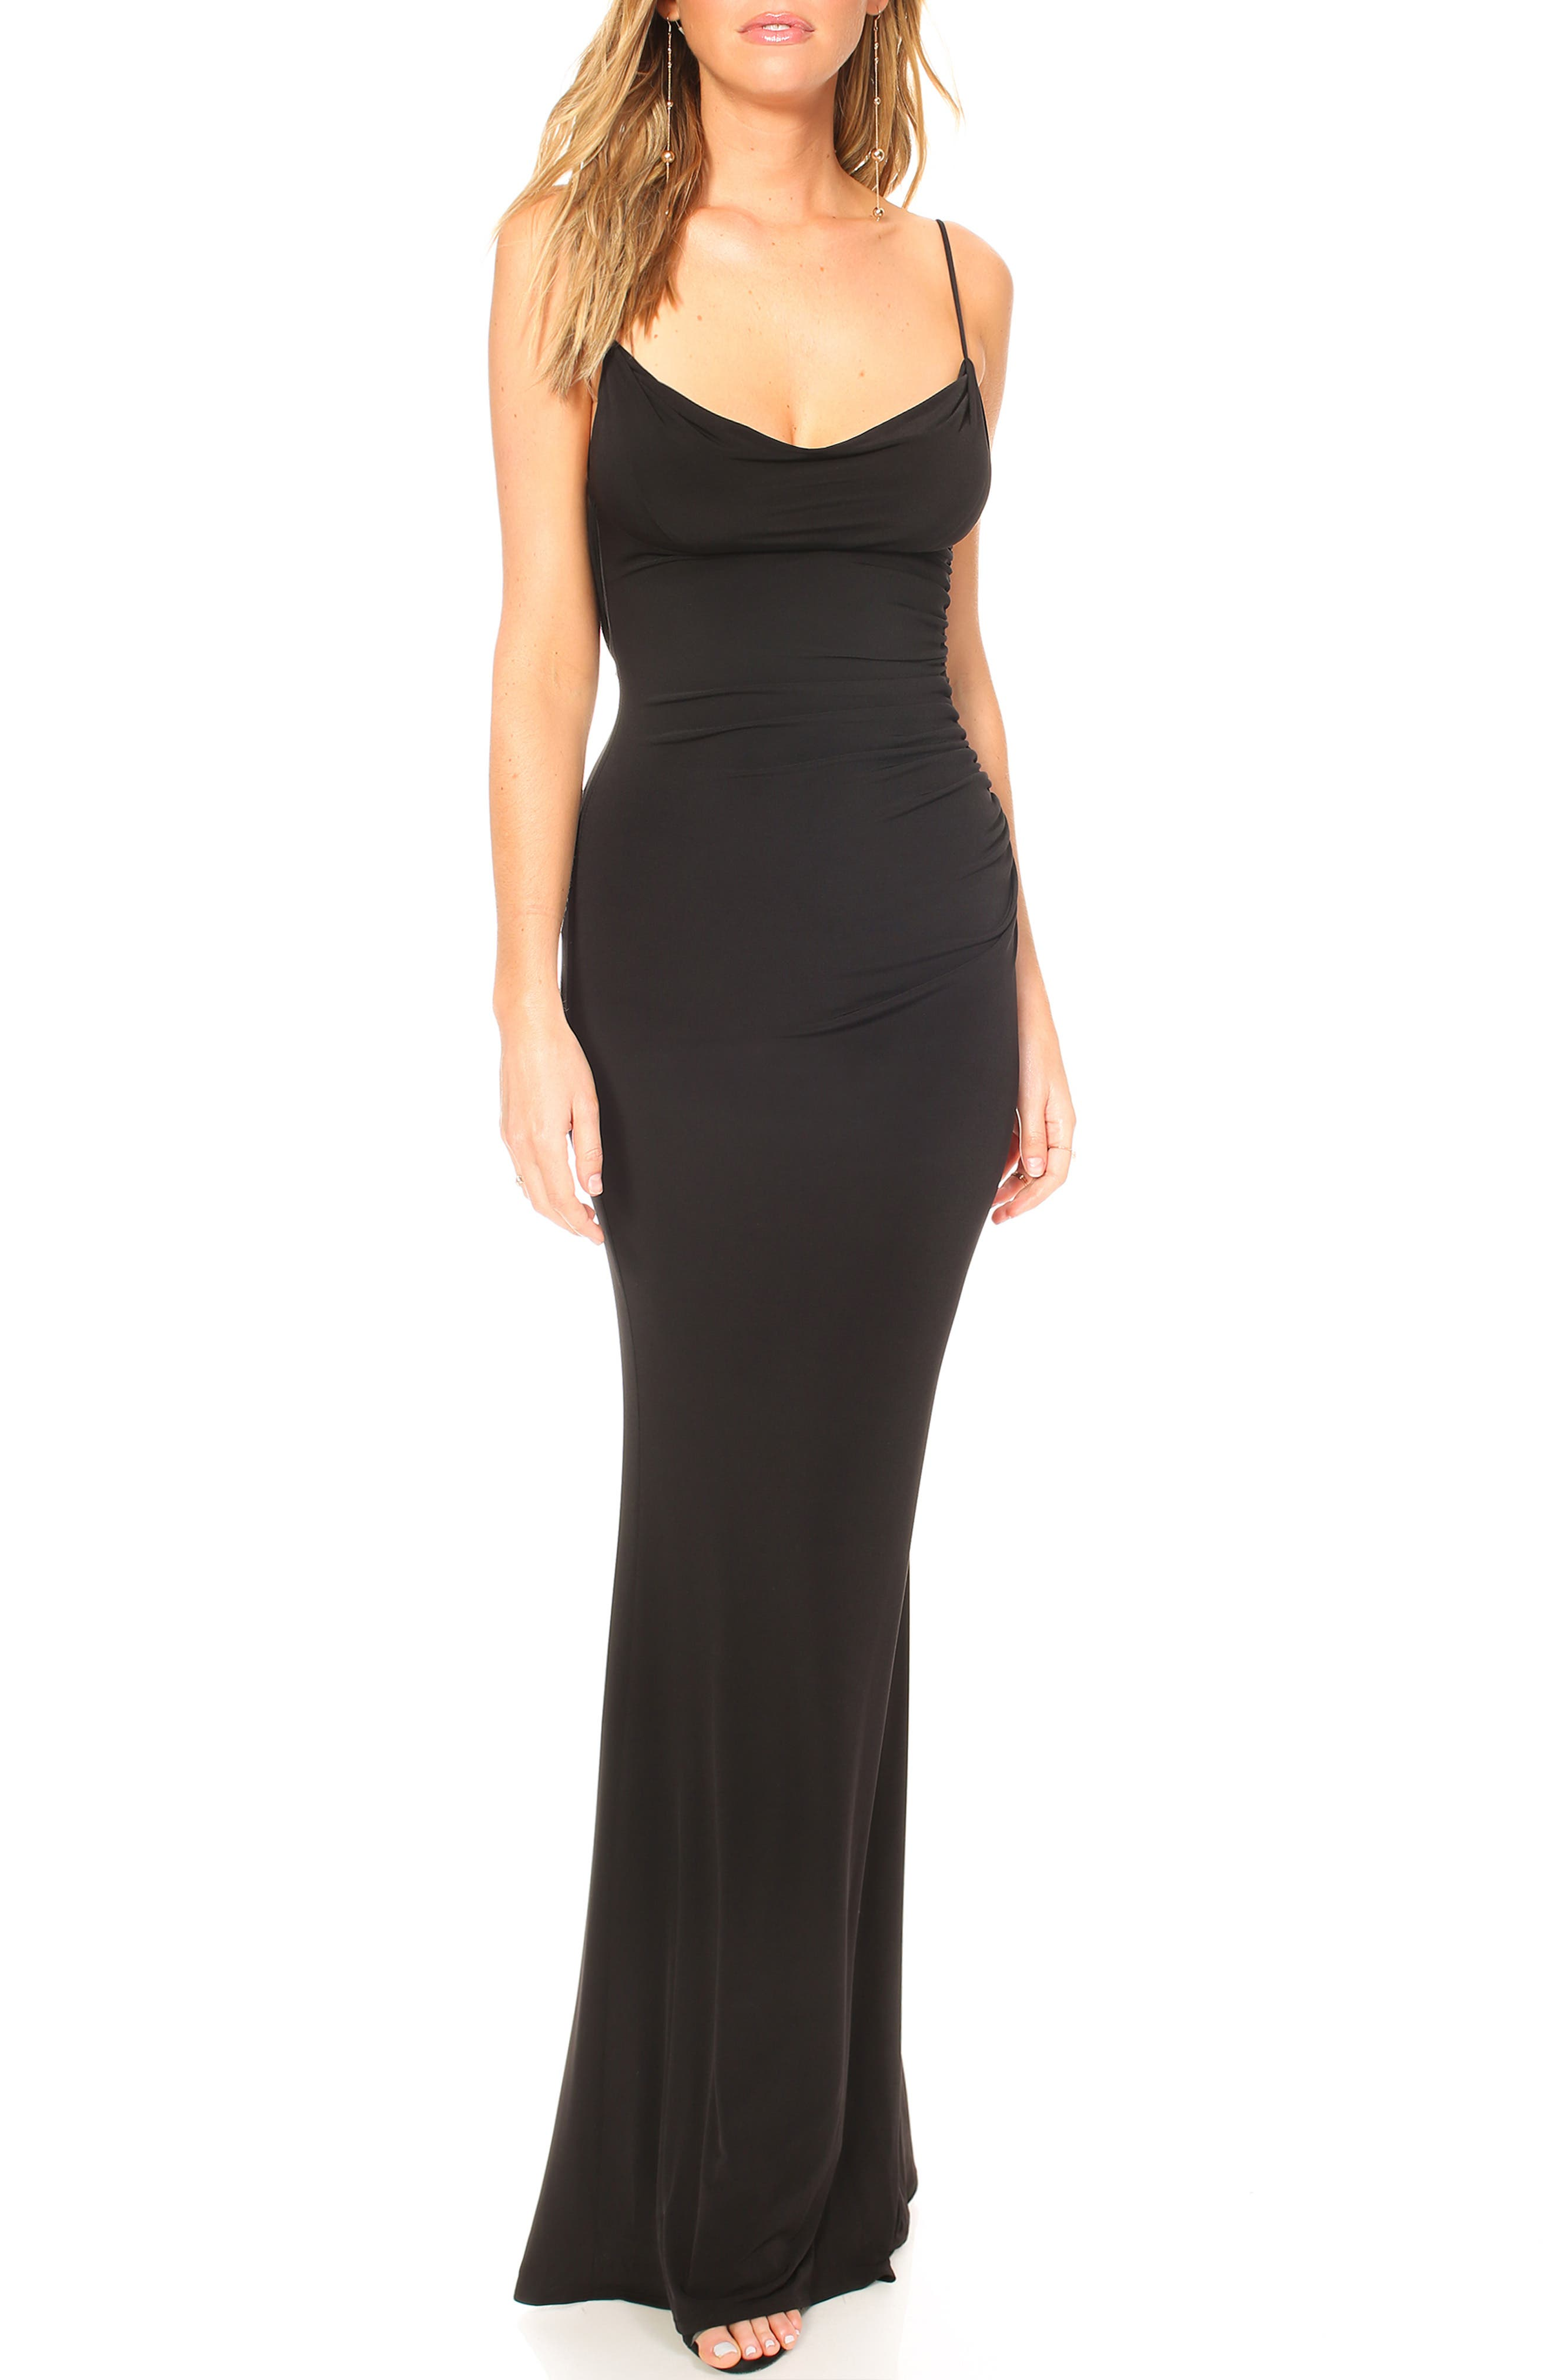 Katie May Surreal Cowl Back Evening Dress, Black